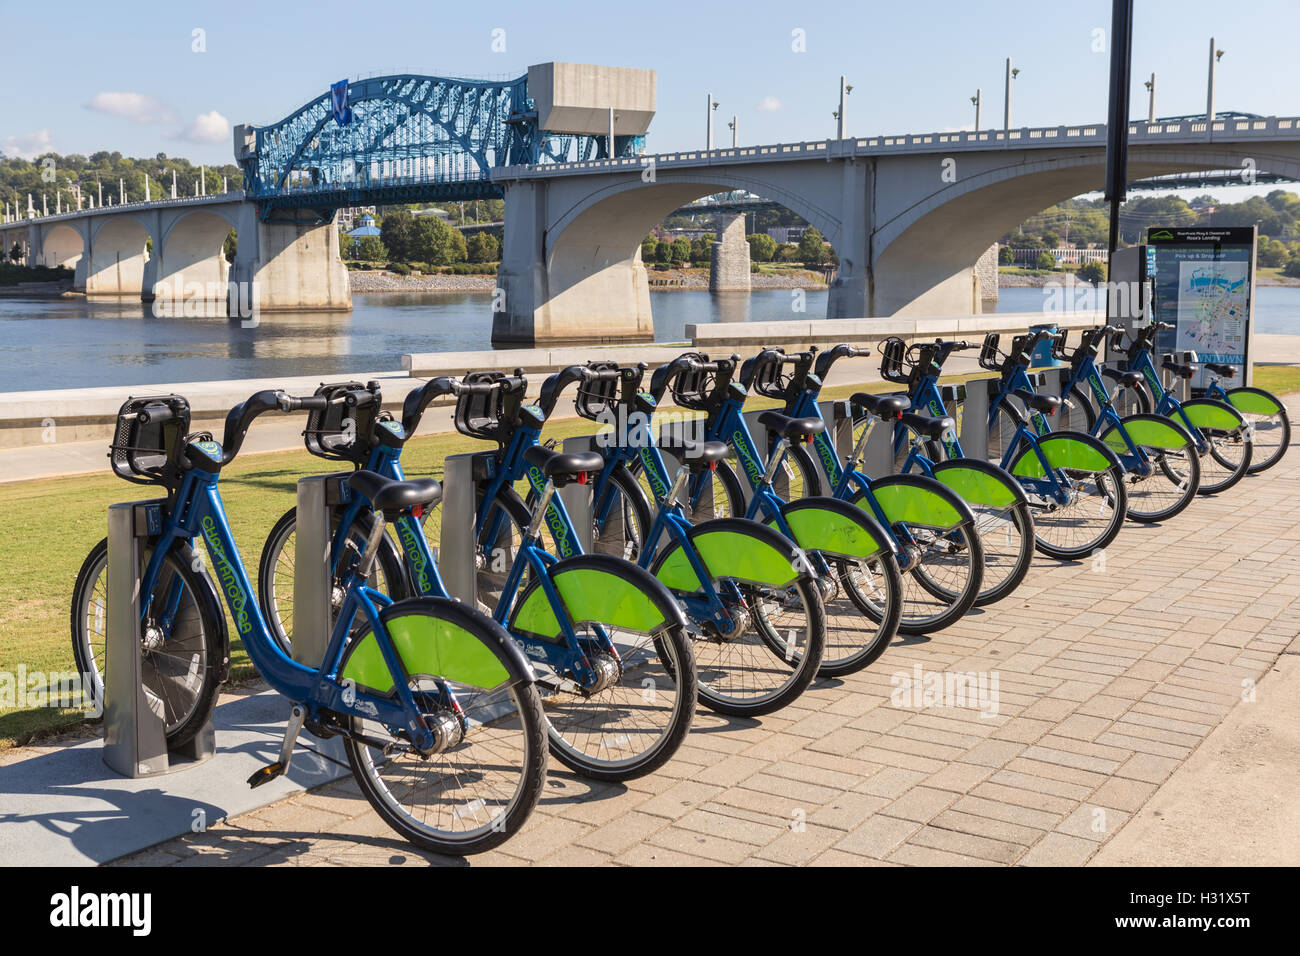 Bikes wait for riders at a Bike Chattanooga Bicycle Transit System docking station at Ross's Landing in Chattanooga, - Stock Image